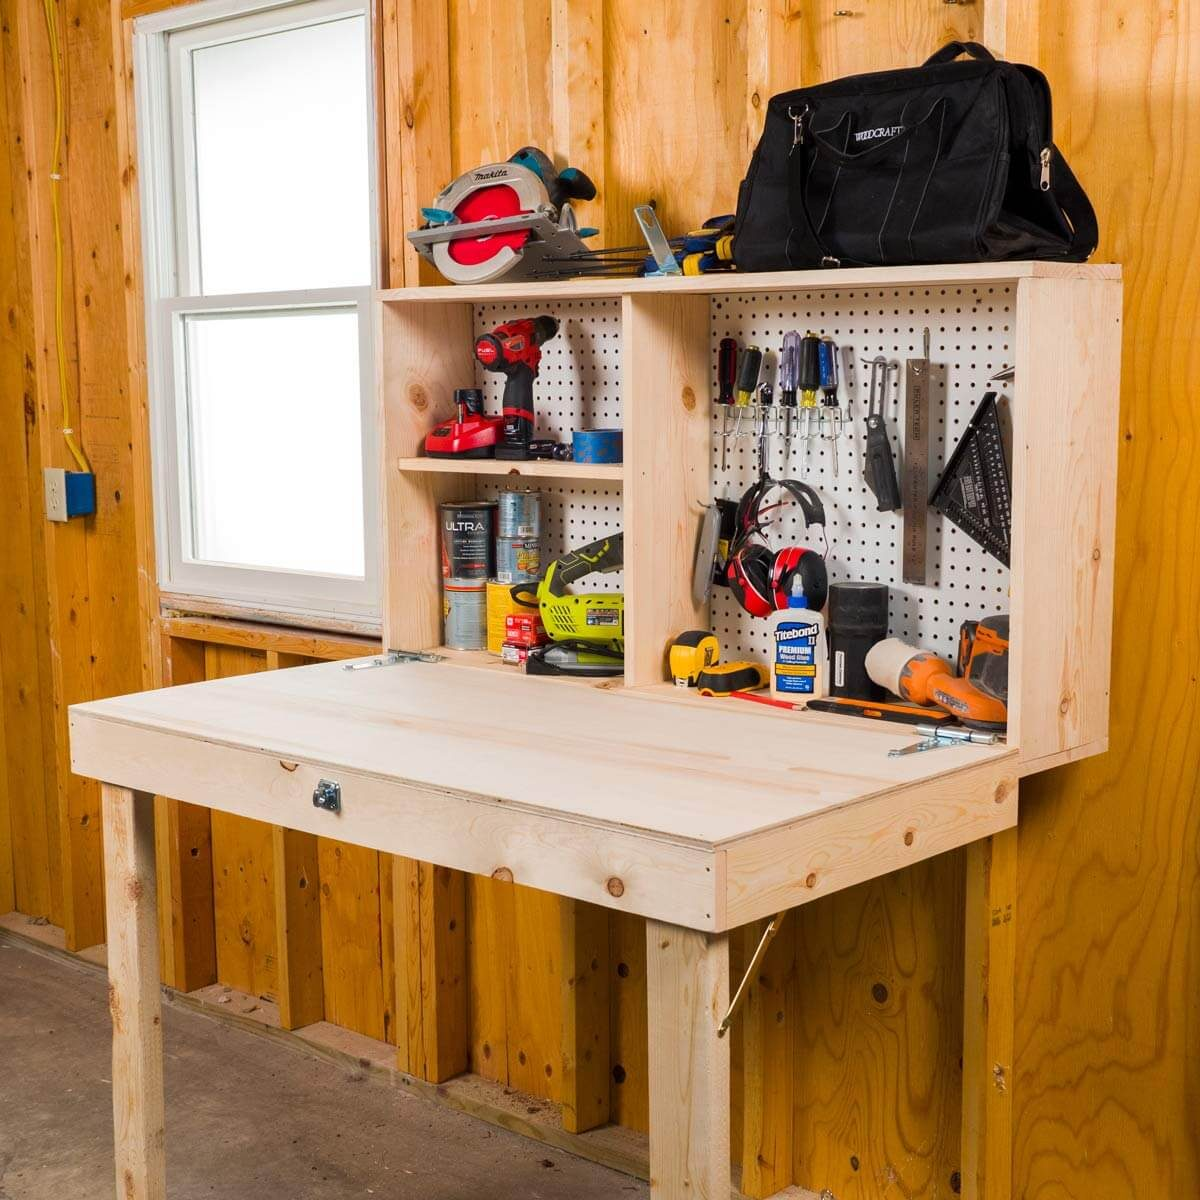 14 Super-Simple Workbenches You Can Build — The Family Handyman on diy wire ideas, diy lockers ideas, diy bicycle ideas, diy cupboard ideas, diy theme ideas, diy lights ideas, diy garage ideas, diy bucket ideas, diy workbench on wheels, diy workbench plans, diy garage workbench, diy hardware ideas, diy workbench organization, homemade tool storage ideas, diy workbench vise, diy wood workbench, workshop ideas, diy workbench drawings, diy build a workbench, diy sand ideas,